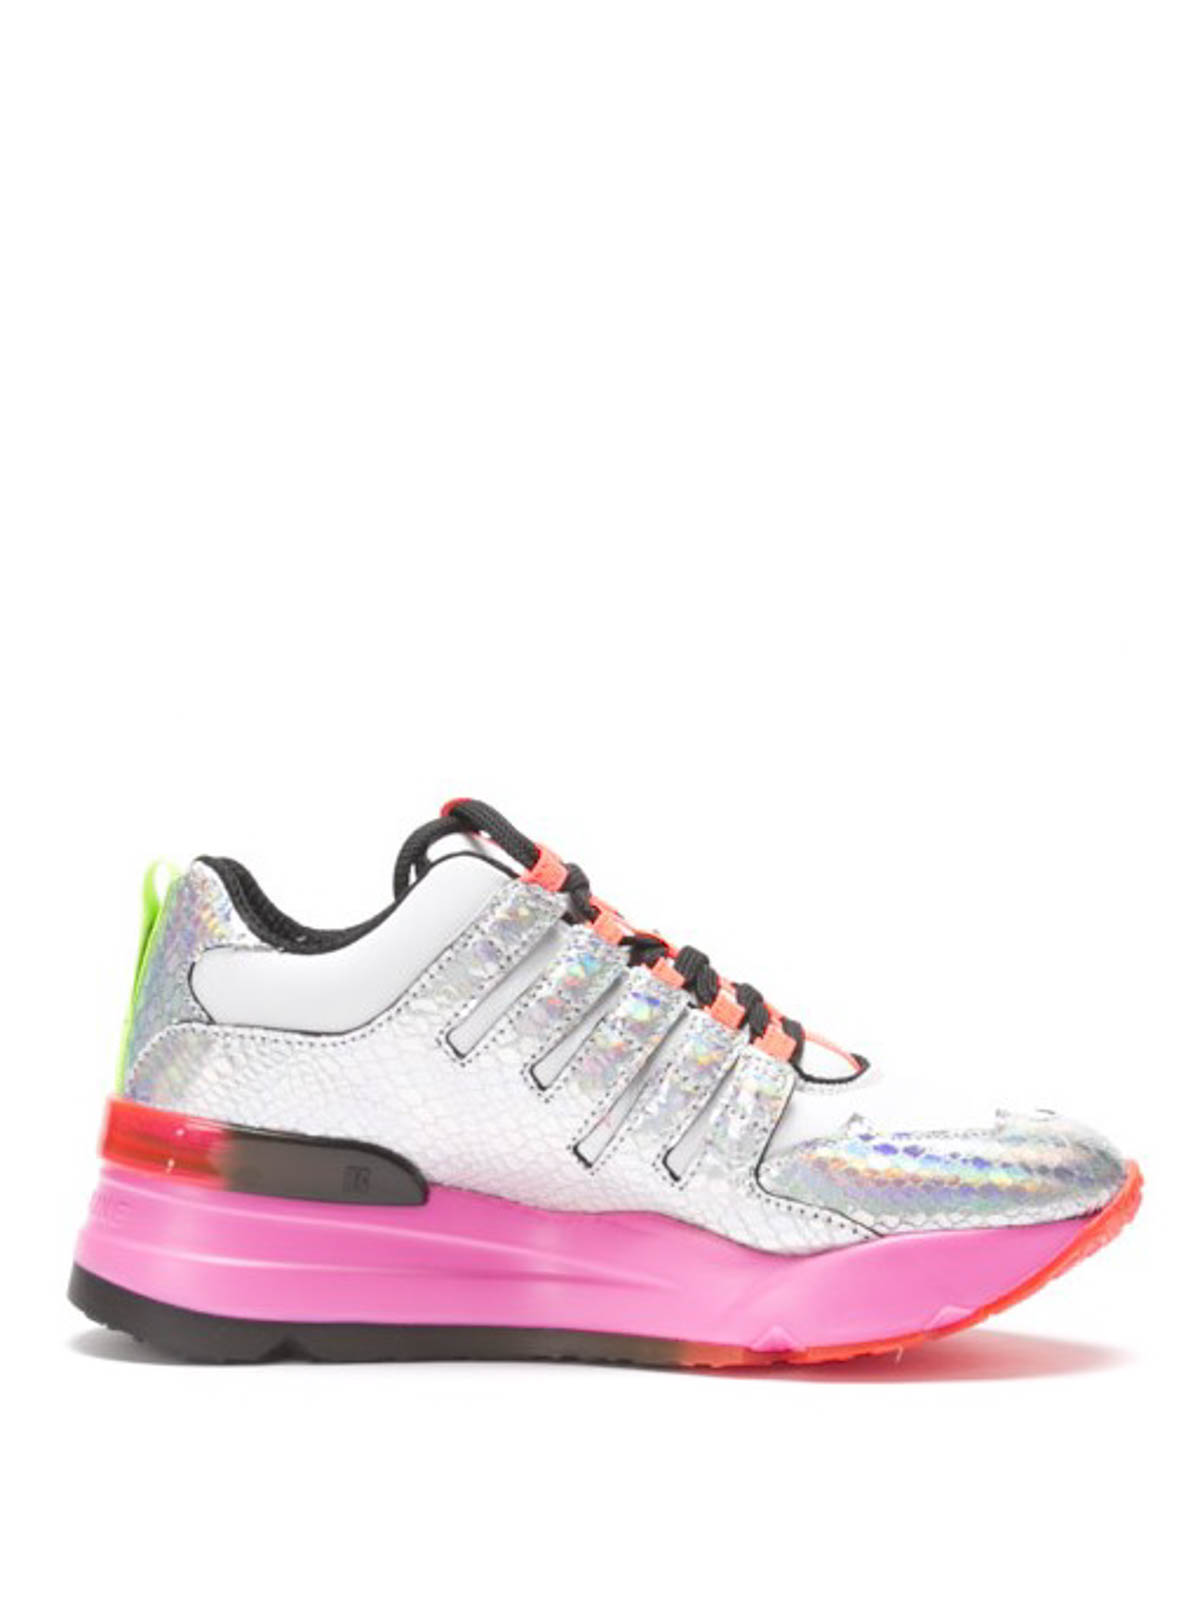 lowest price 306be 9a285 ruco-line-online-trainers-r-evolve-laminated-sneakers-00000060647f00s002.jpg